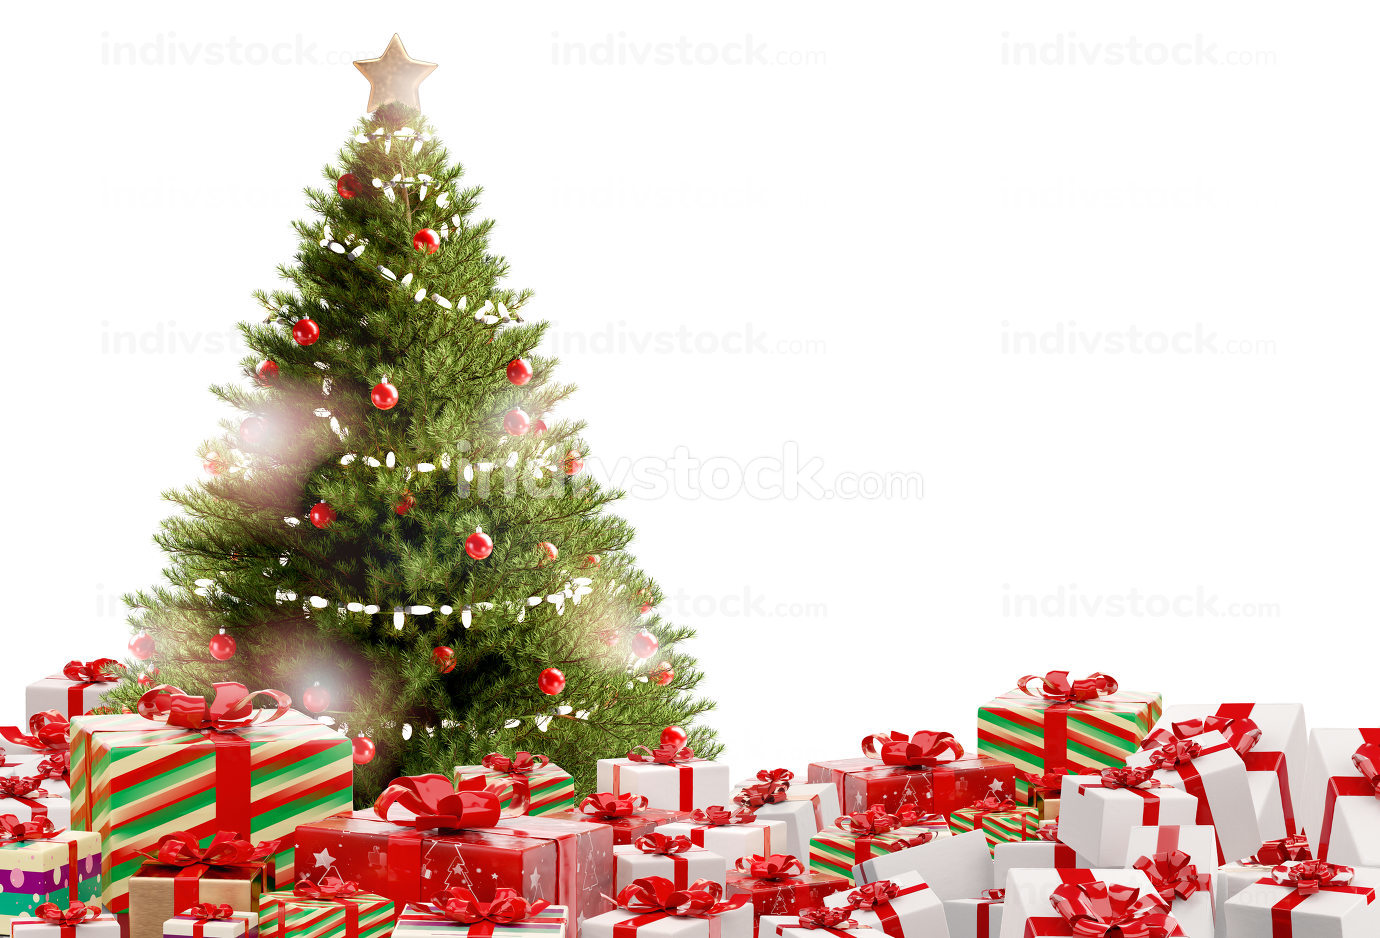 Christmas gifts festive presents design 3d-illustration